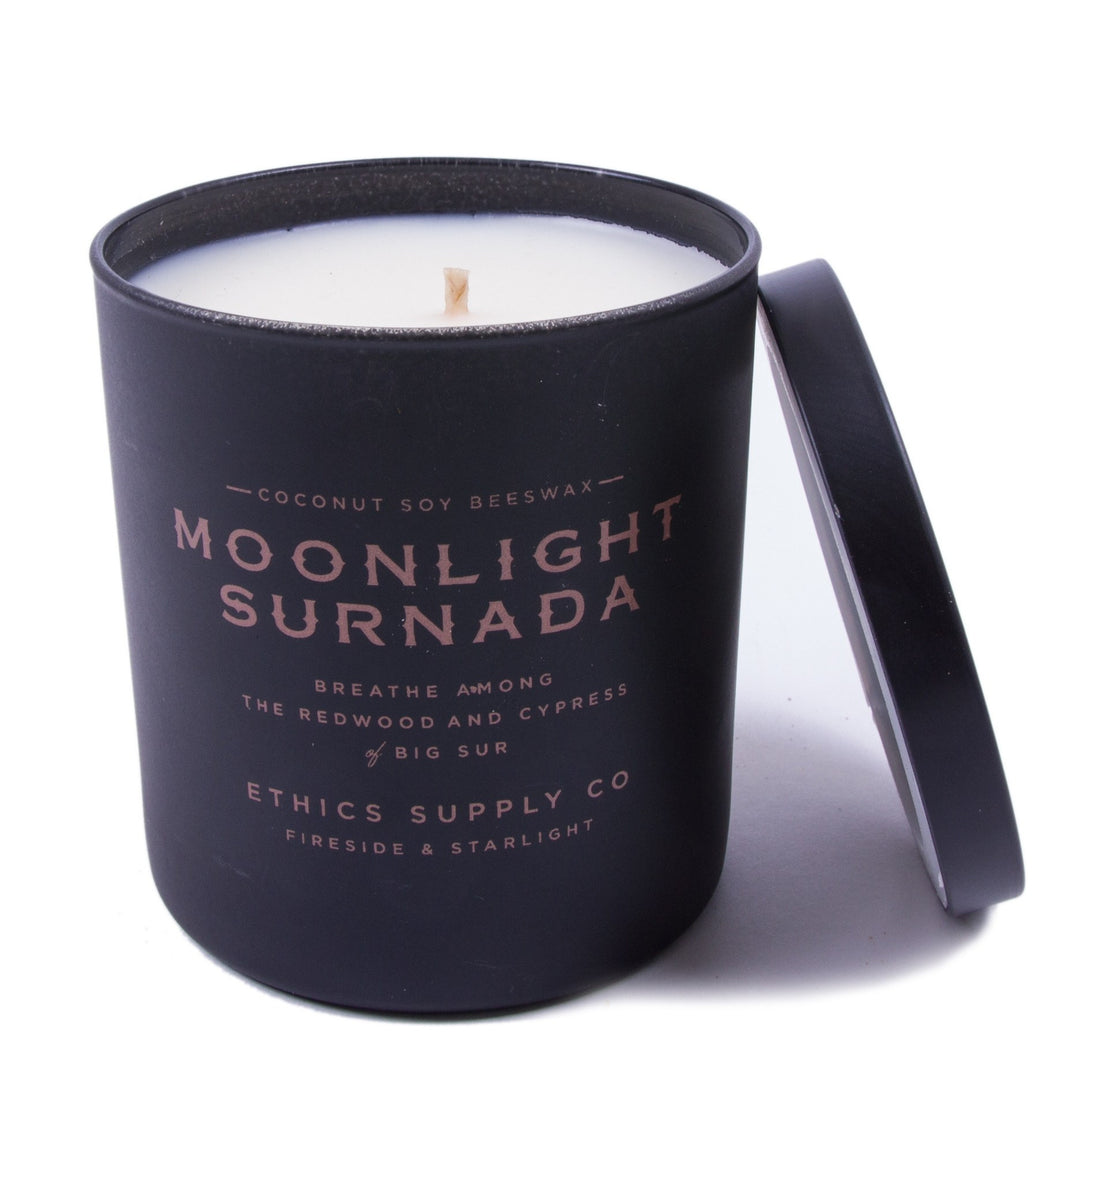 Fireside & Starlight - Moonlight Surnada Candle - Home Essentials - Iron and Resin